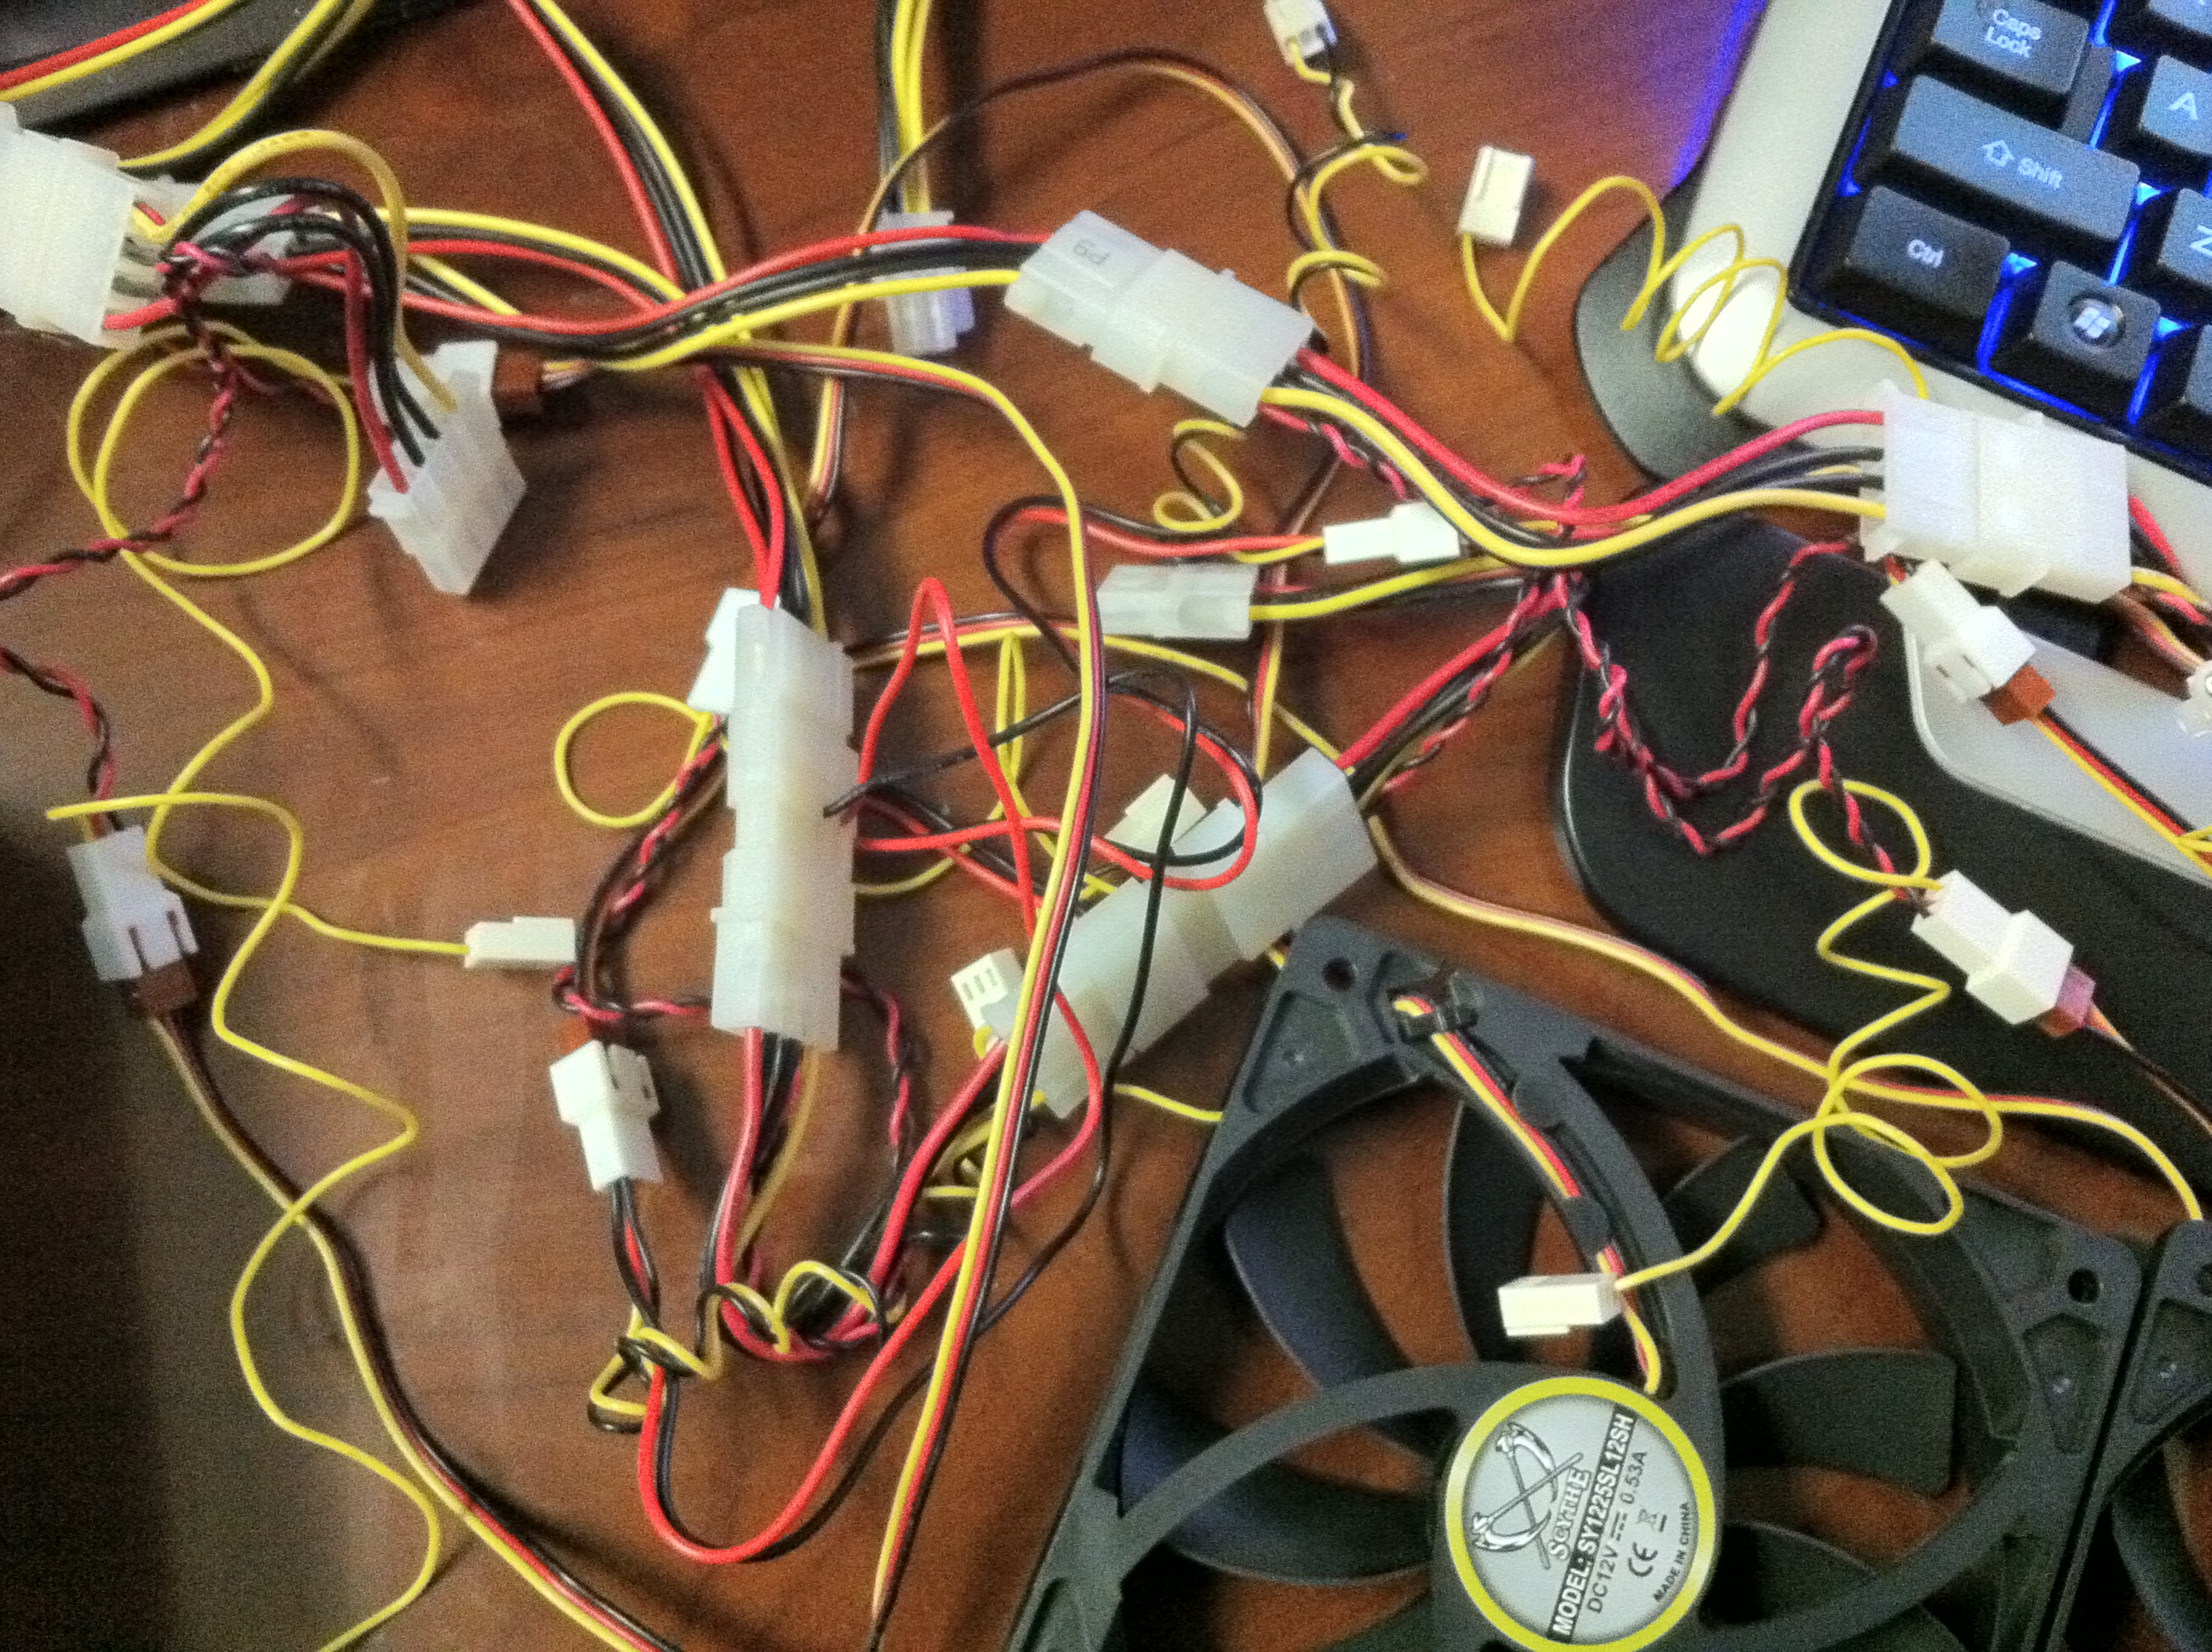 file molex to pin adapter fan connections jpg file molex to 3 pin adapter fan connections jpg